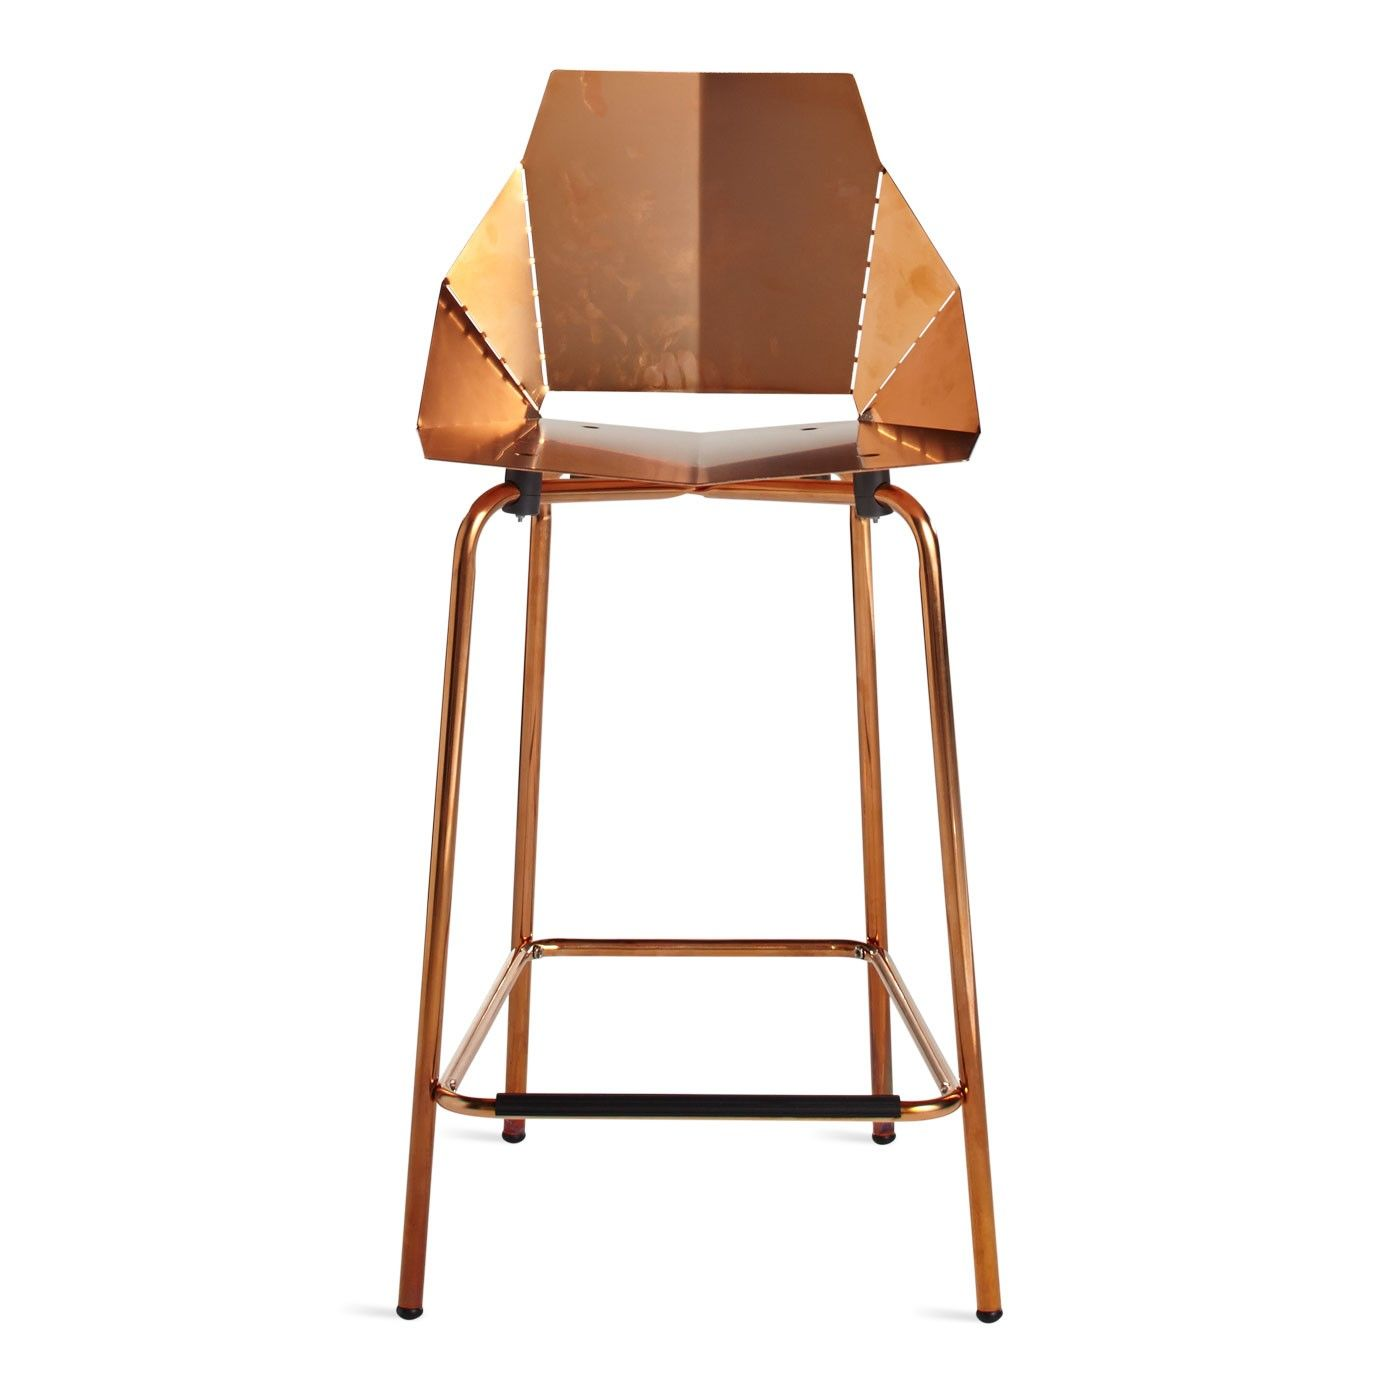 Real Good Counter Stool Copper Copper Bar Stools Modern Counter Stools Copper Stool